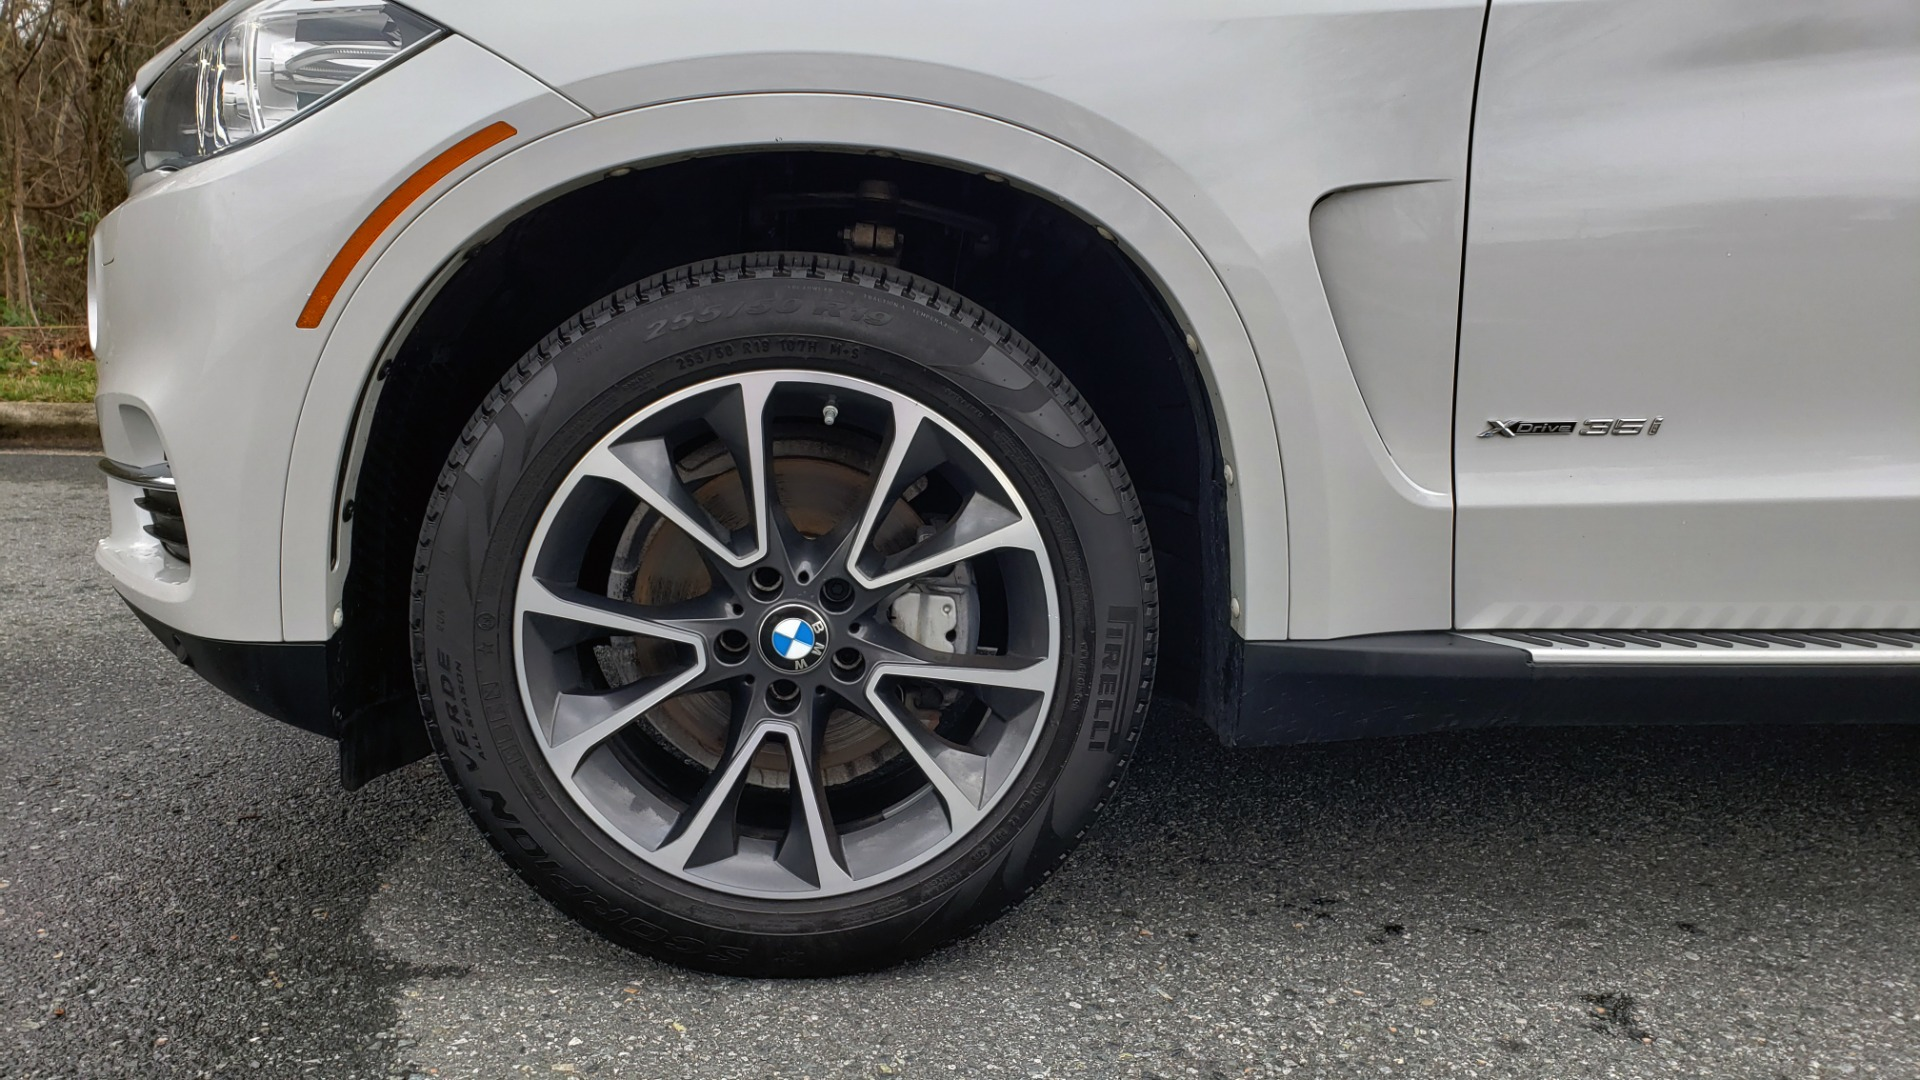 Used 2017 BMW X5 XDRIVE35I / NAV / HUD / DRVR ASST / SUNROOF / REARVIEW for sale Sold at Formula Imports in Charlotte NC 28227 80